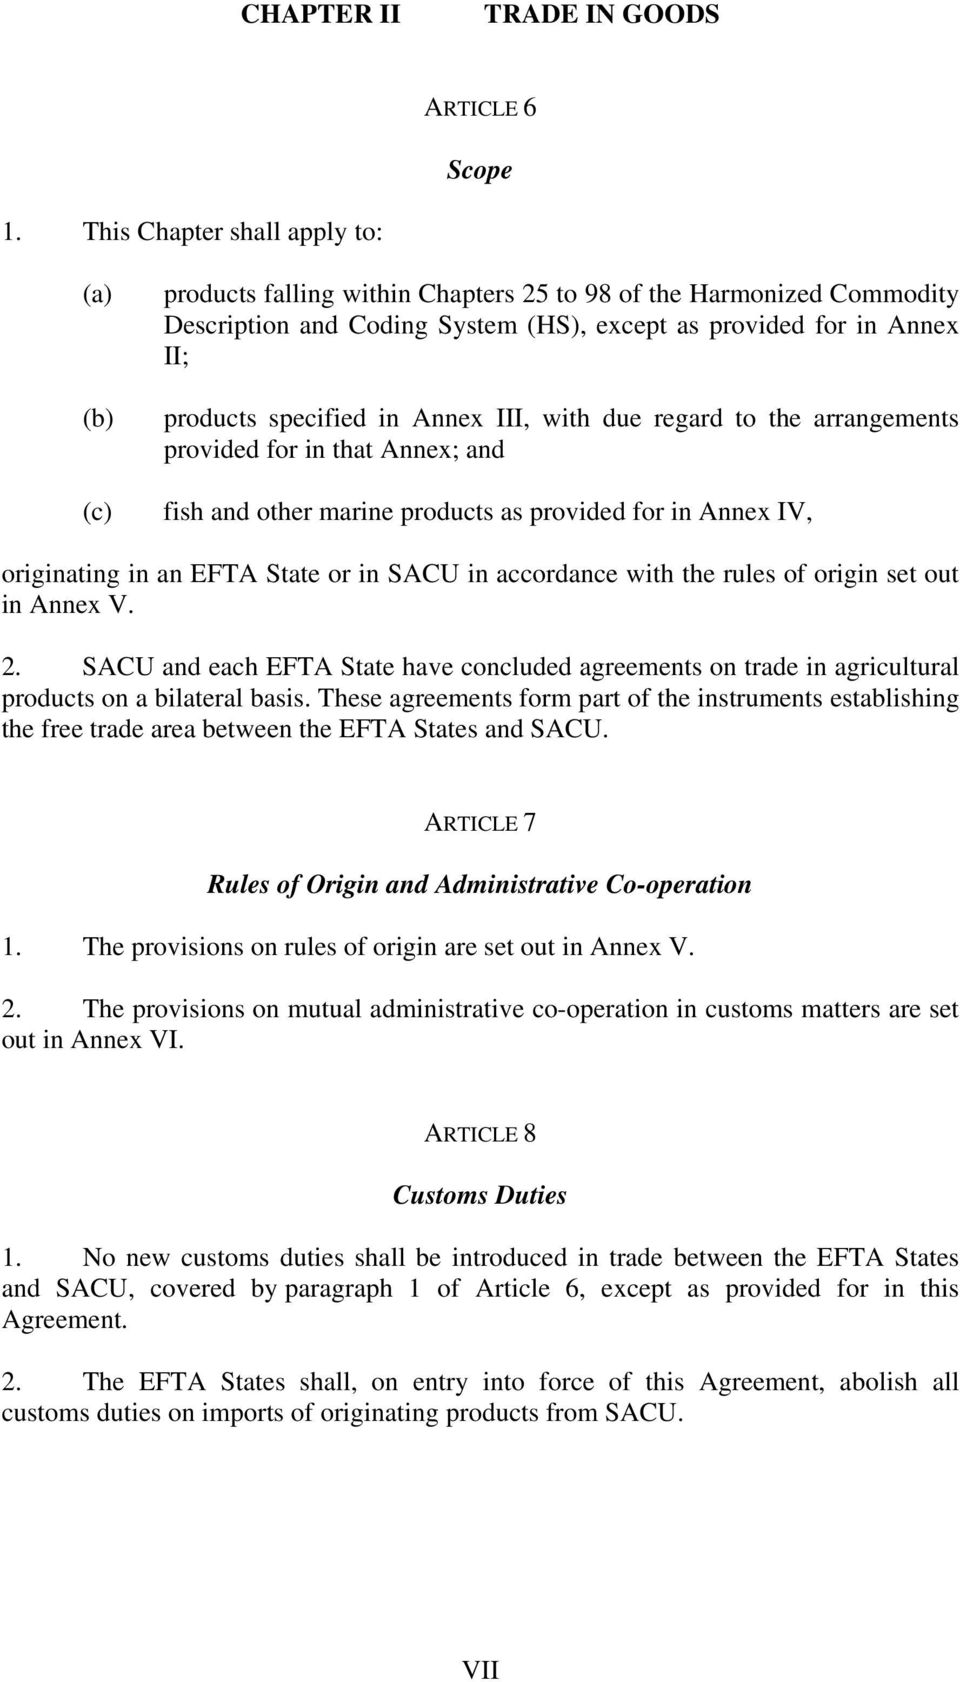 specified in Annex III, with due regard to the arrangements provided for in that Annex; and fish and other marine products as provided for in Annex IV, originating in an EFTA State or in SACU in